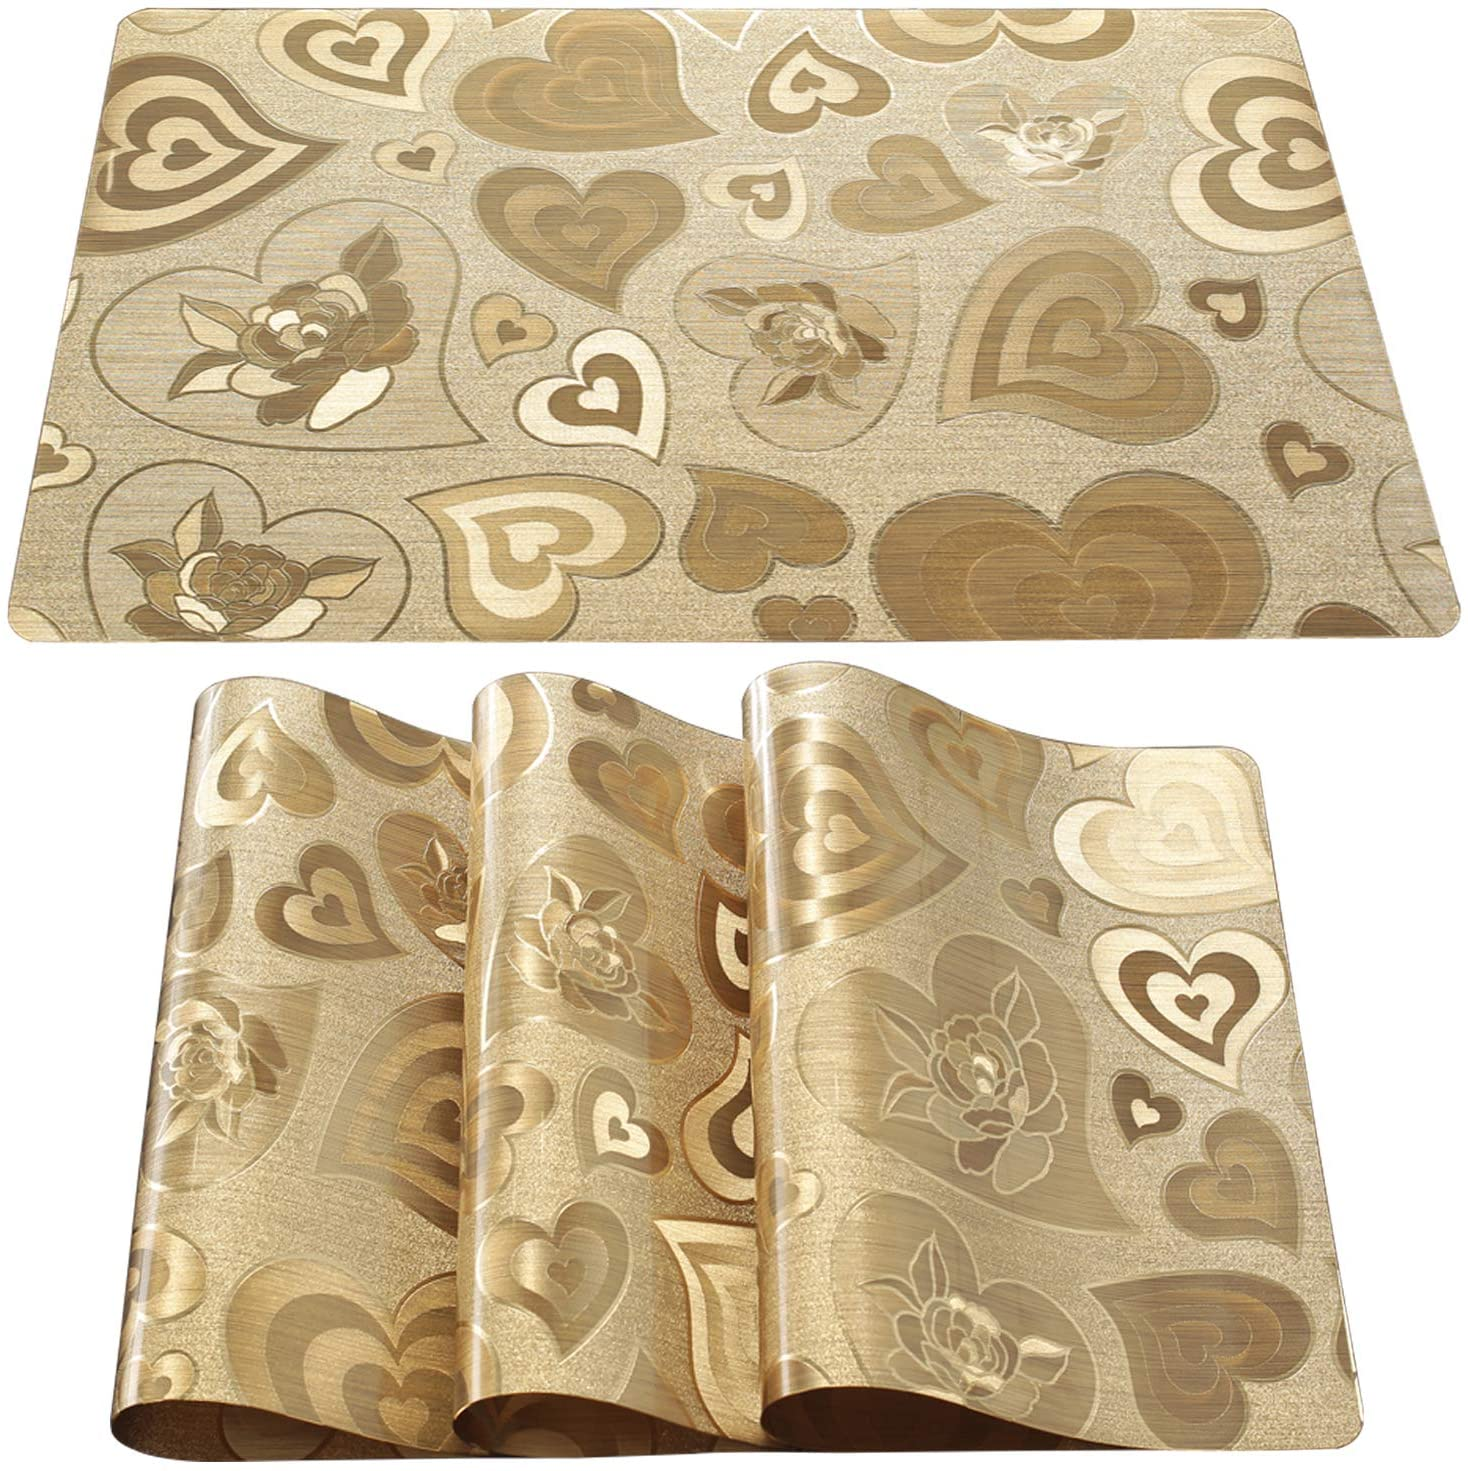 DUOFIRE Placemats for Dining Table Washable Vinyl Placemats PVC Dinner Table Mats Easy to Clean Non Slip Placemats for Holidays (Loving Heart:Gold-Set of 4)